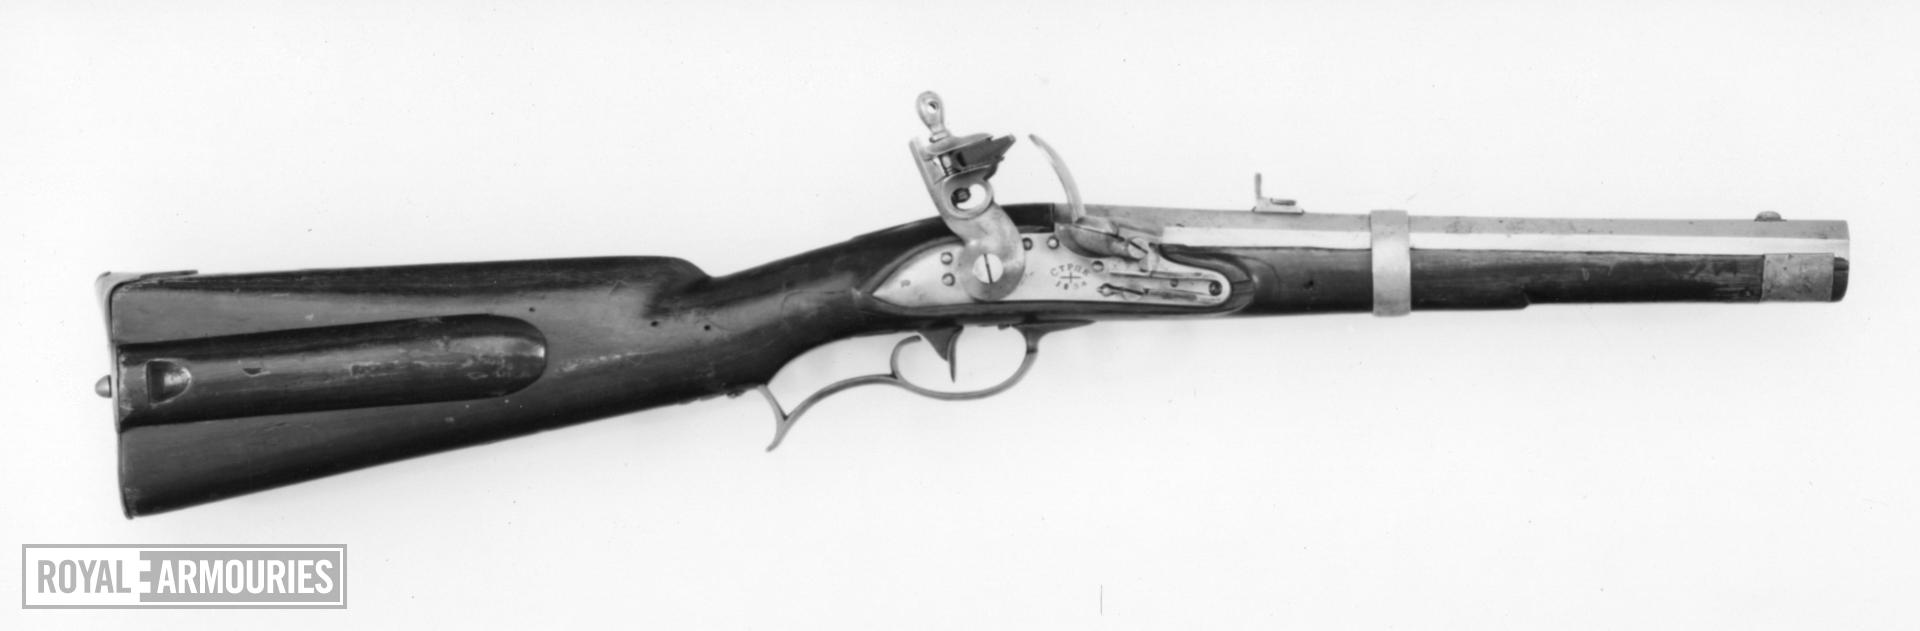 Flintlock military carbine - Model 1828 Mounted Chasseur and Hussar's Carbine